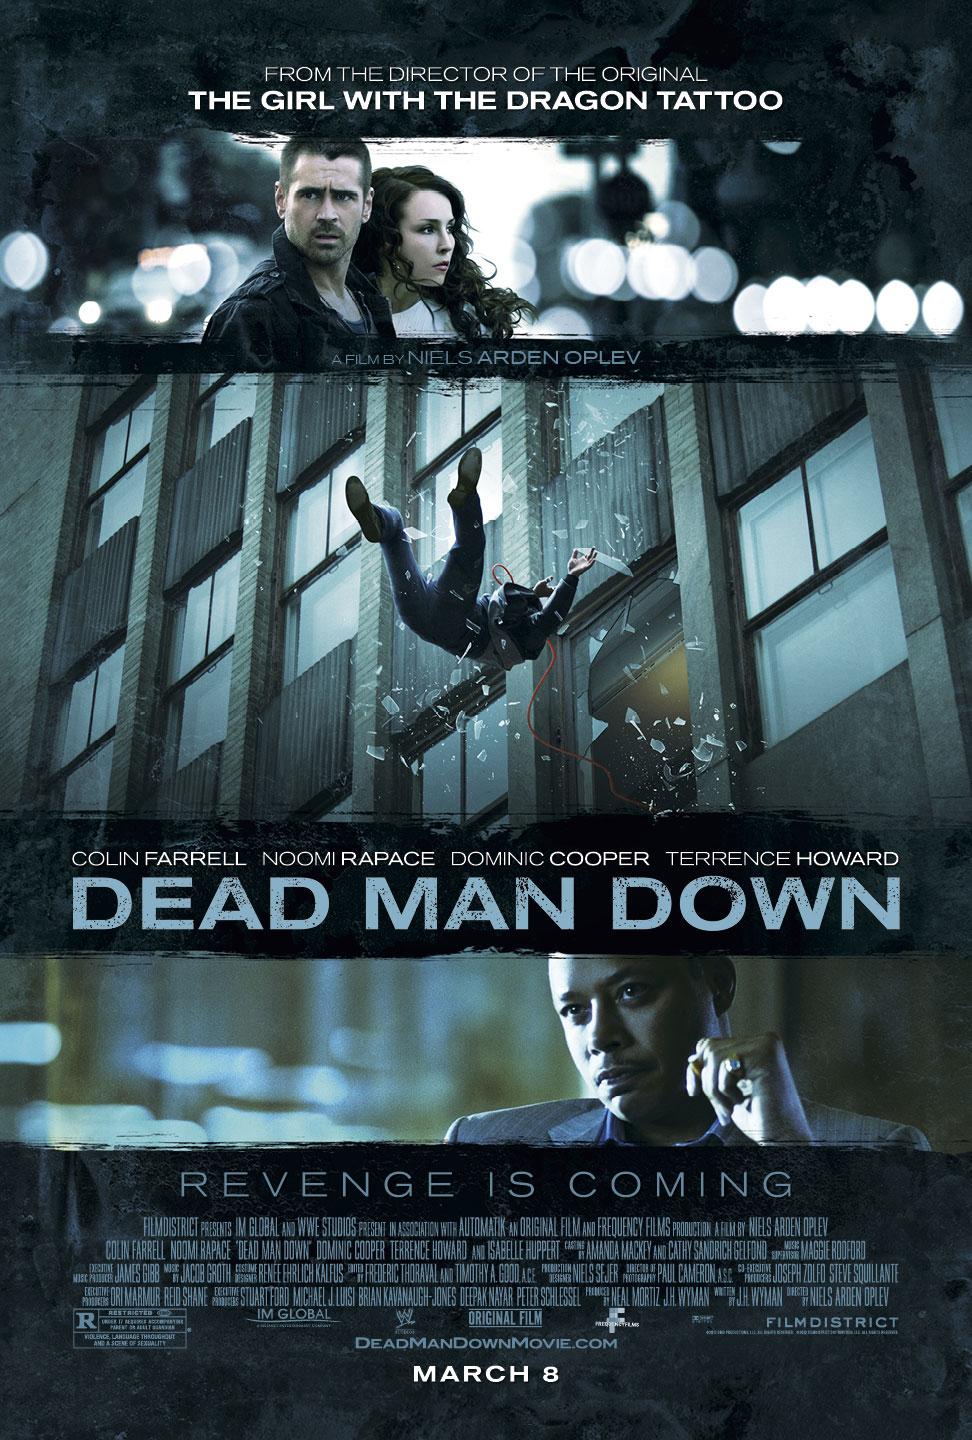 Get a Glimpse Into Dead Man Down in New Featurette